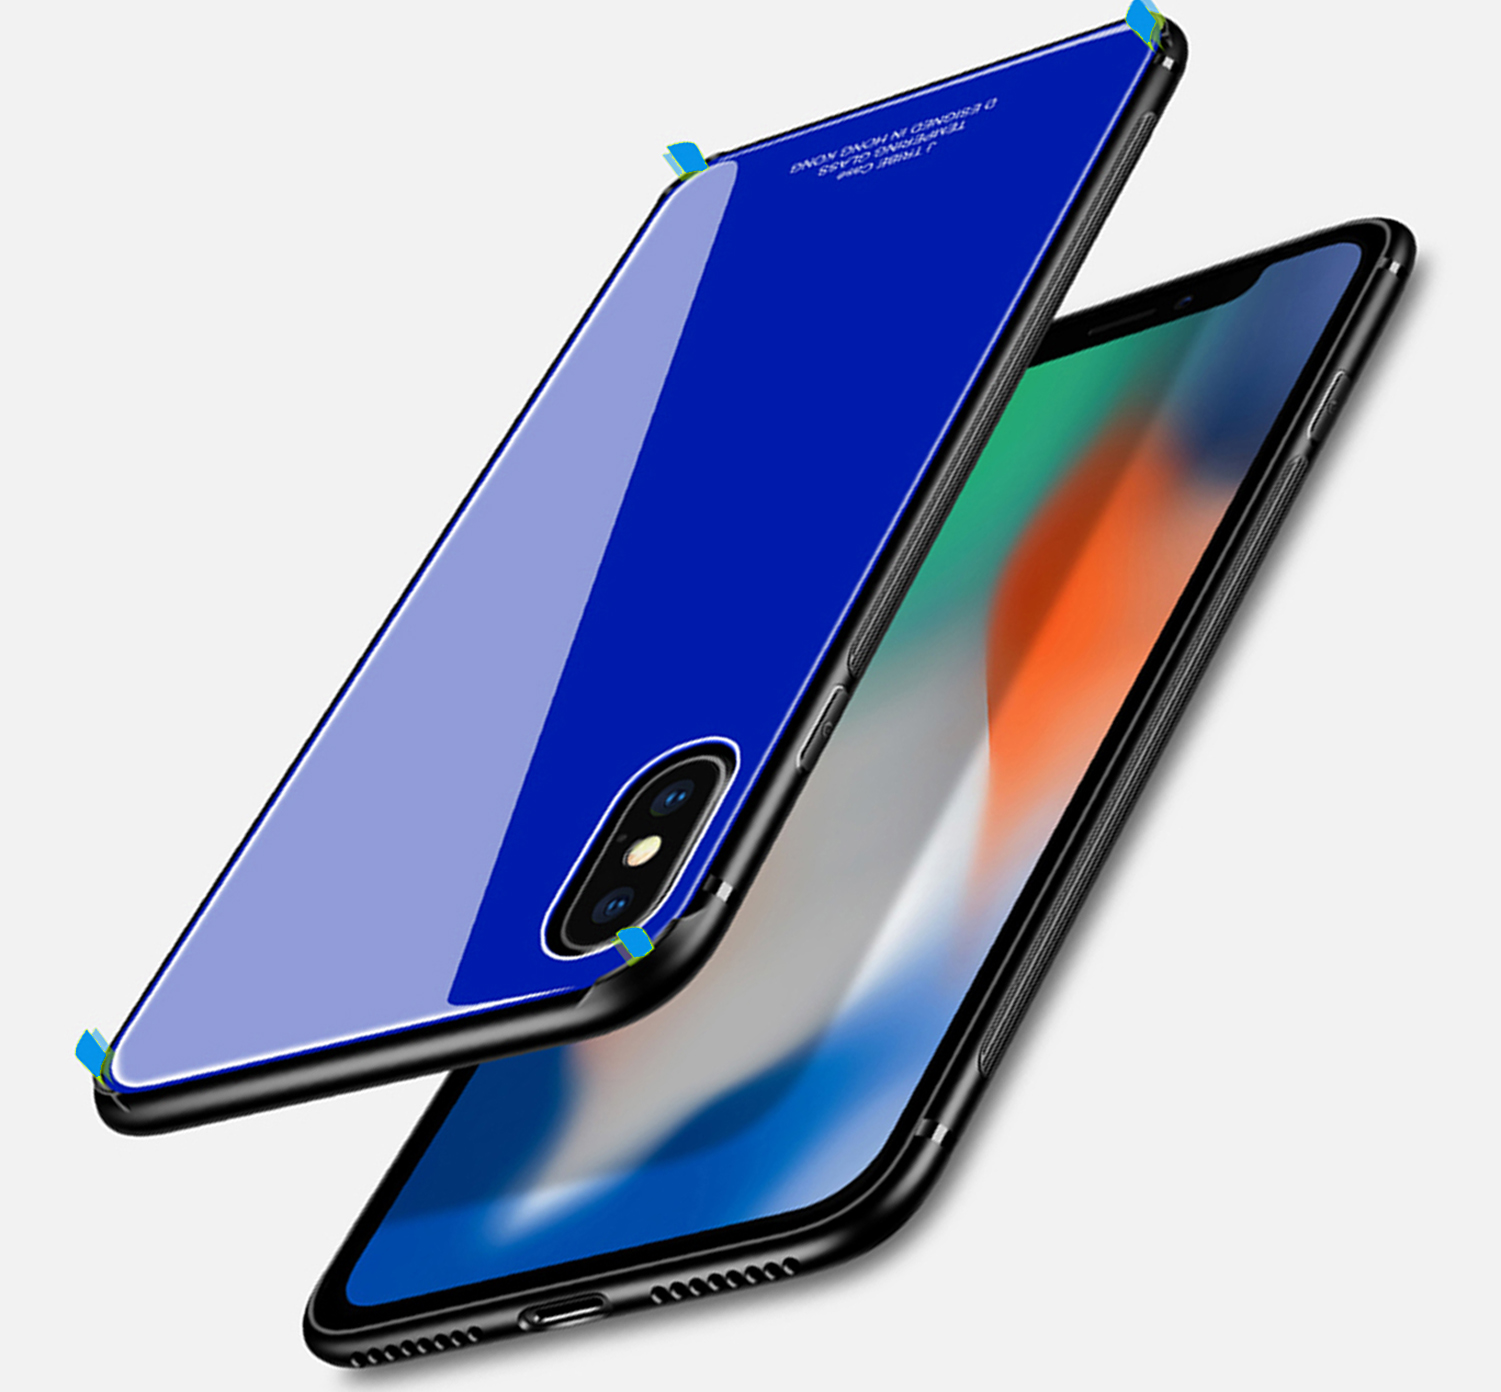 iPhone X Case, iPhone X Glass Case, AMBM Tempered Glass Design Tempered Glass Screen Back Case with TPU Bumper Protective Case Cover for iPhone X / iPhone 10 (Dark blue)